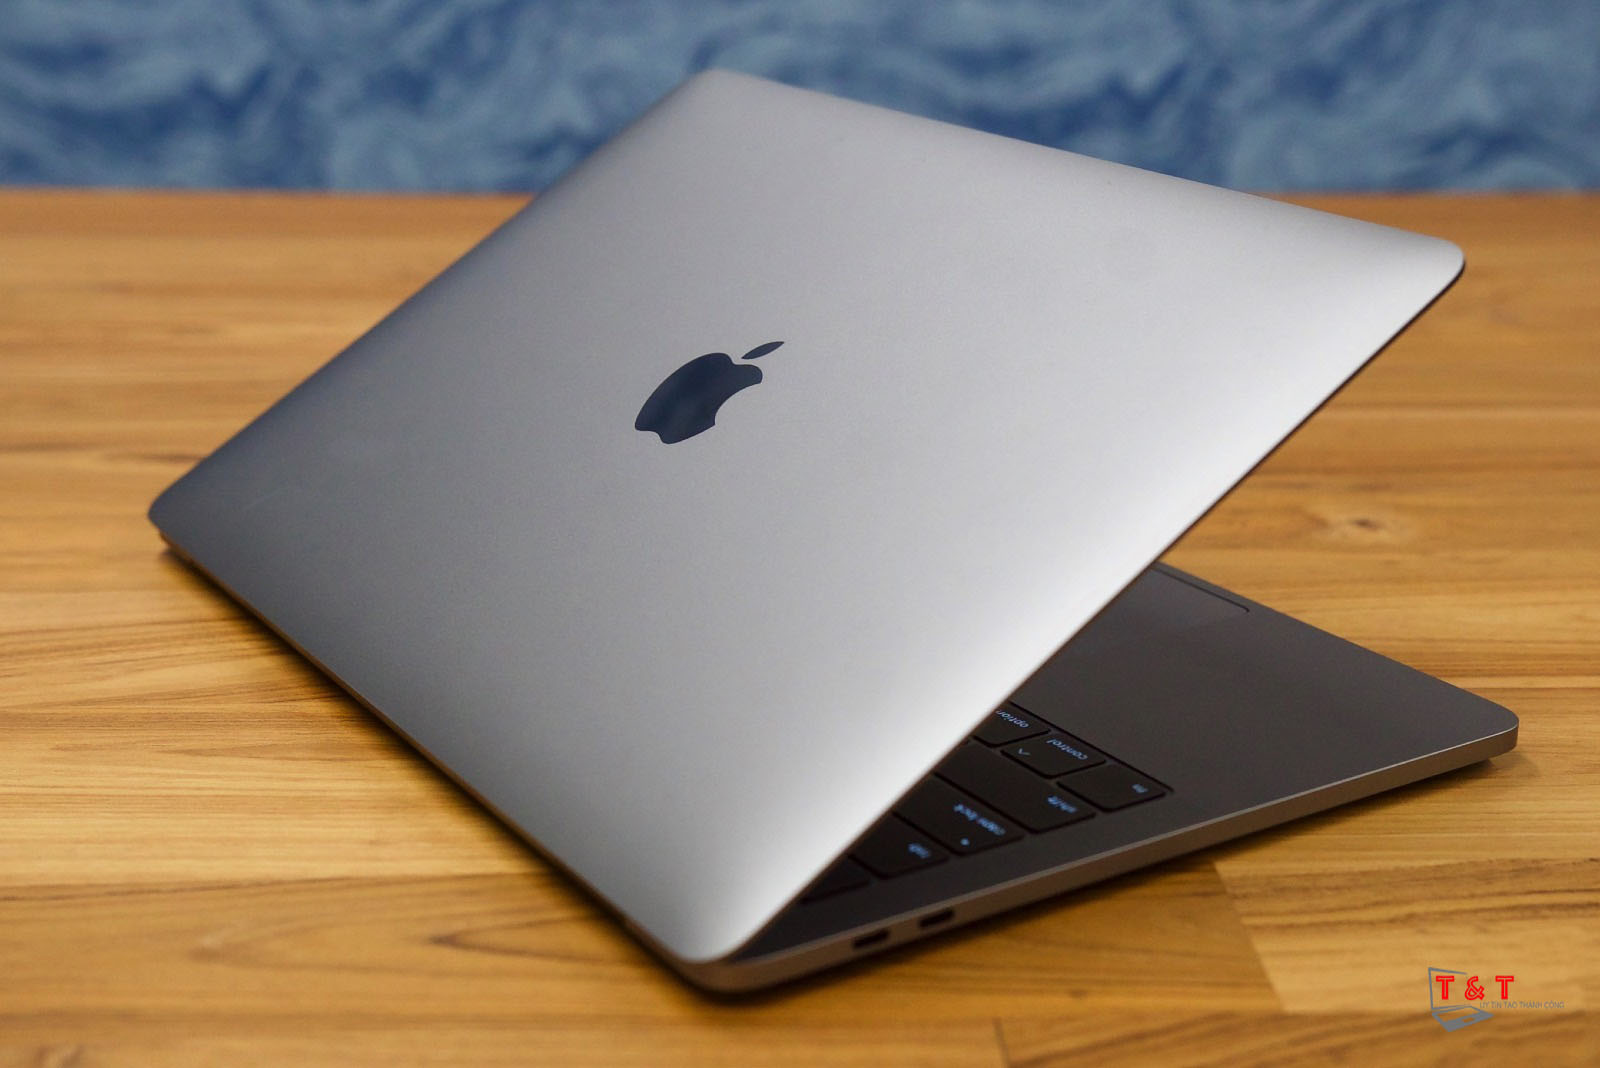 apple-13-inch-macbook-pro-2019-1 (1)